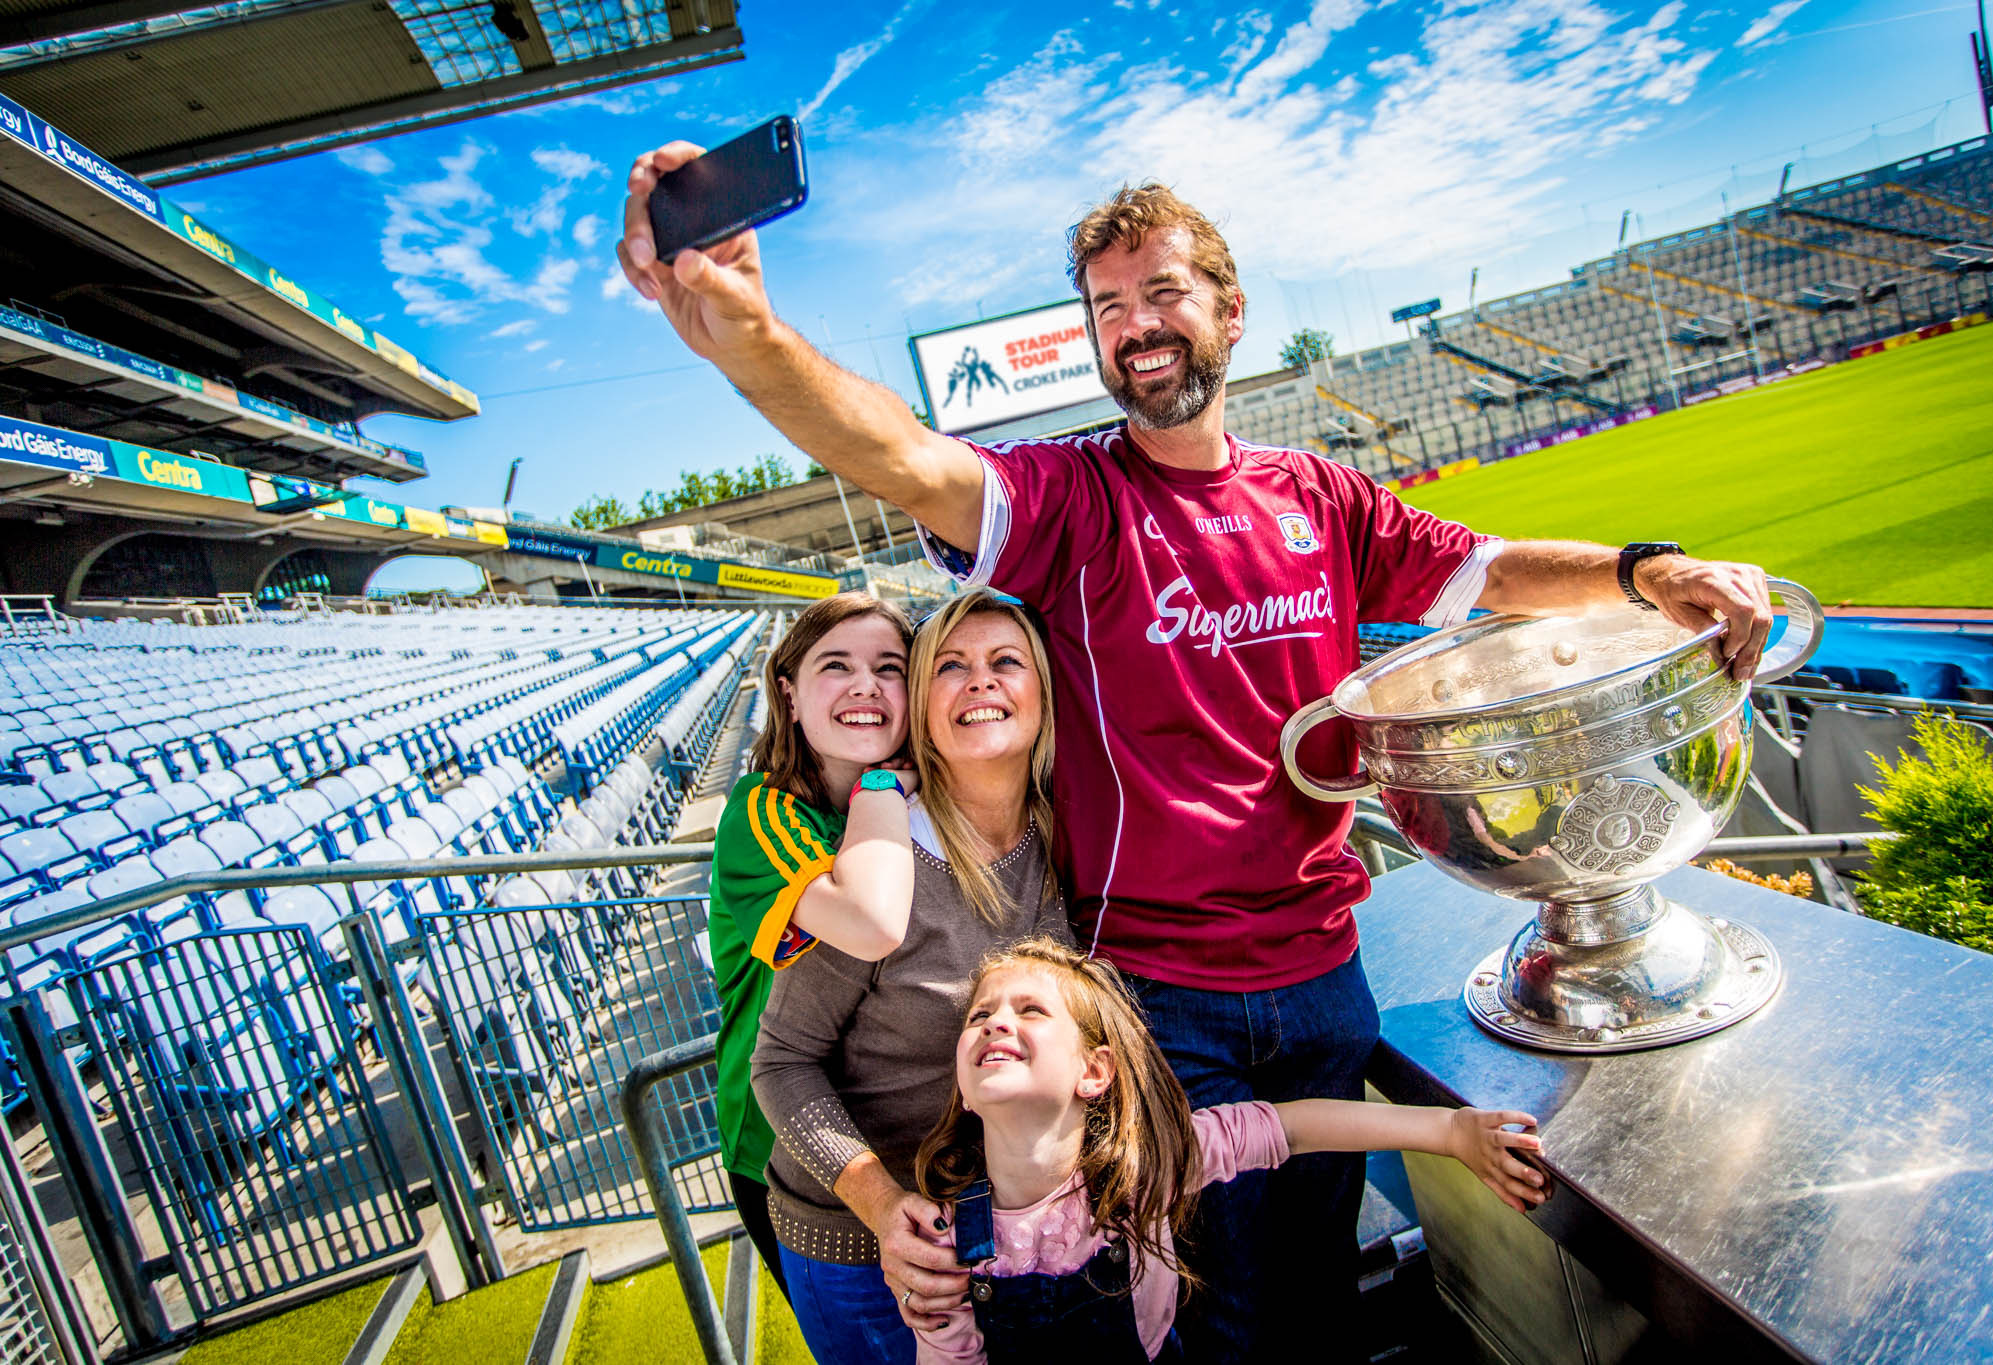 Things to do in County Dublin Dublin, Ireland - Croke Park Stadium Tour - YourDaysOut